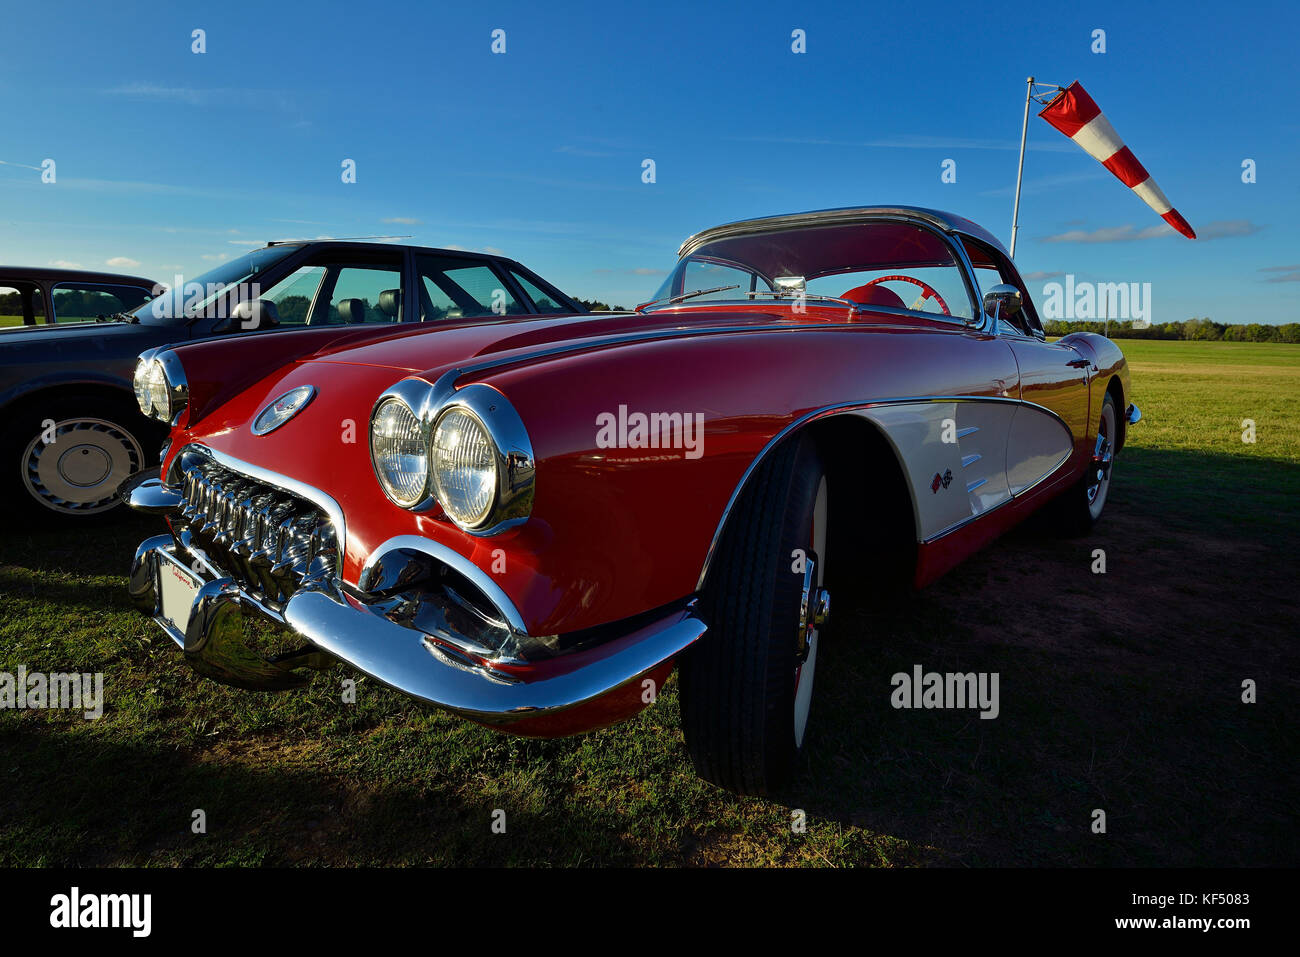 car driving france stock photos car driving france stock images alamy. Black Bedroom Furniture Sets. Home Design Ideas